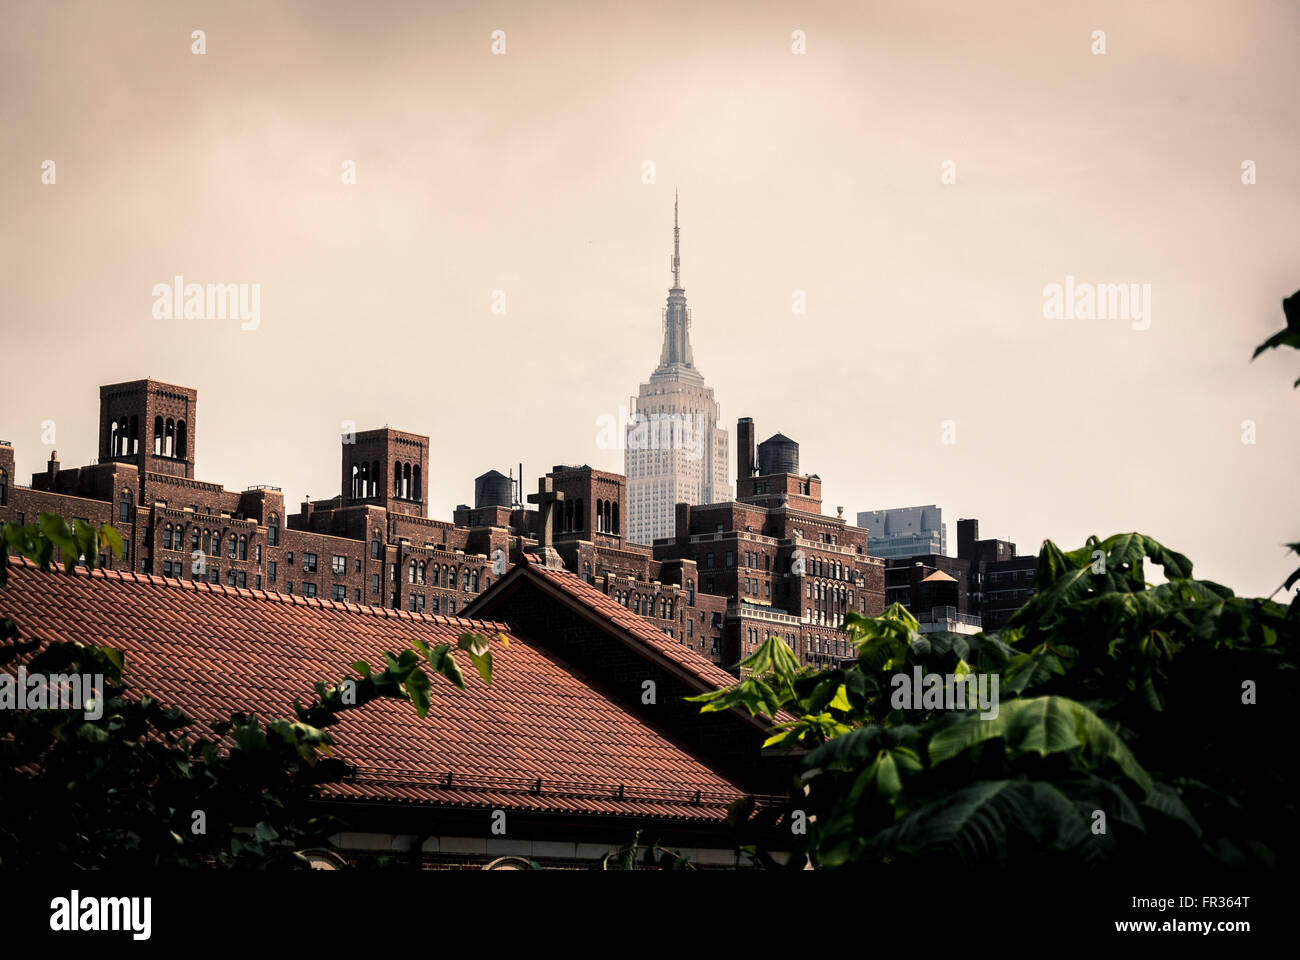 Empire State Building, New York City, USA, viewed from the High Line - Stock Image